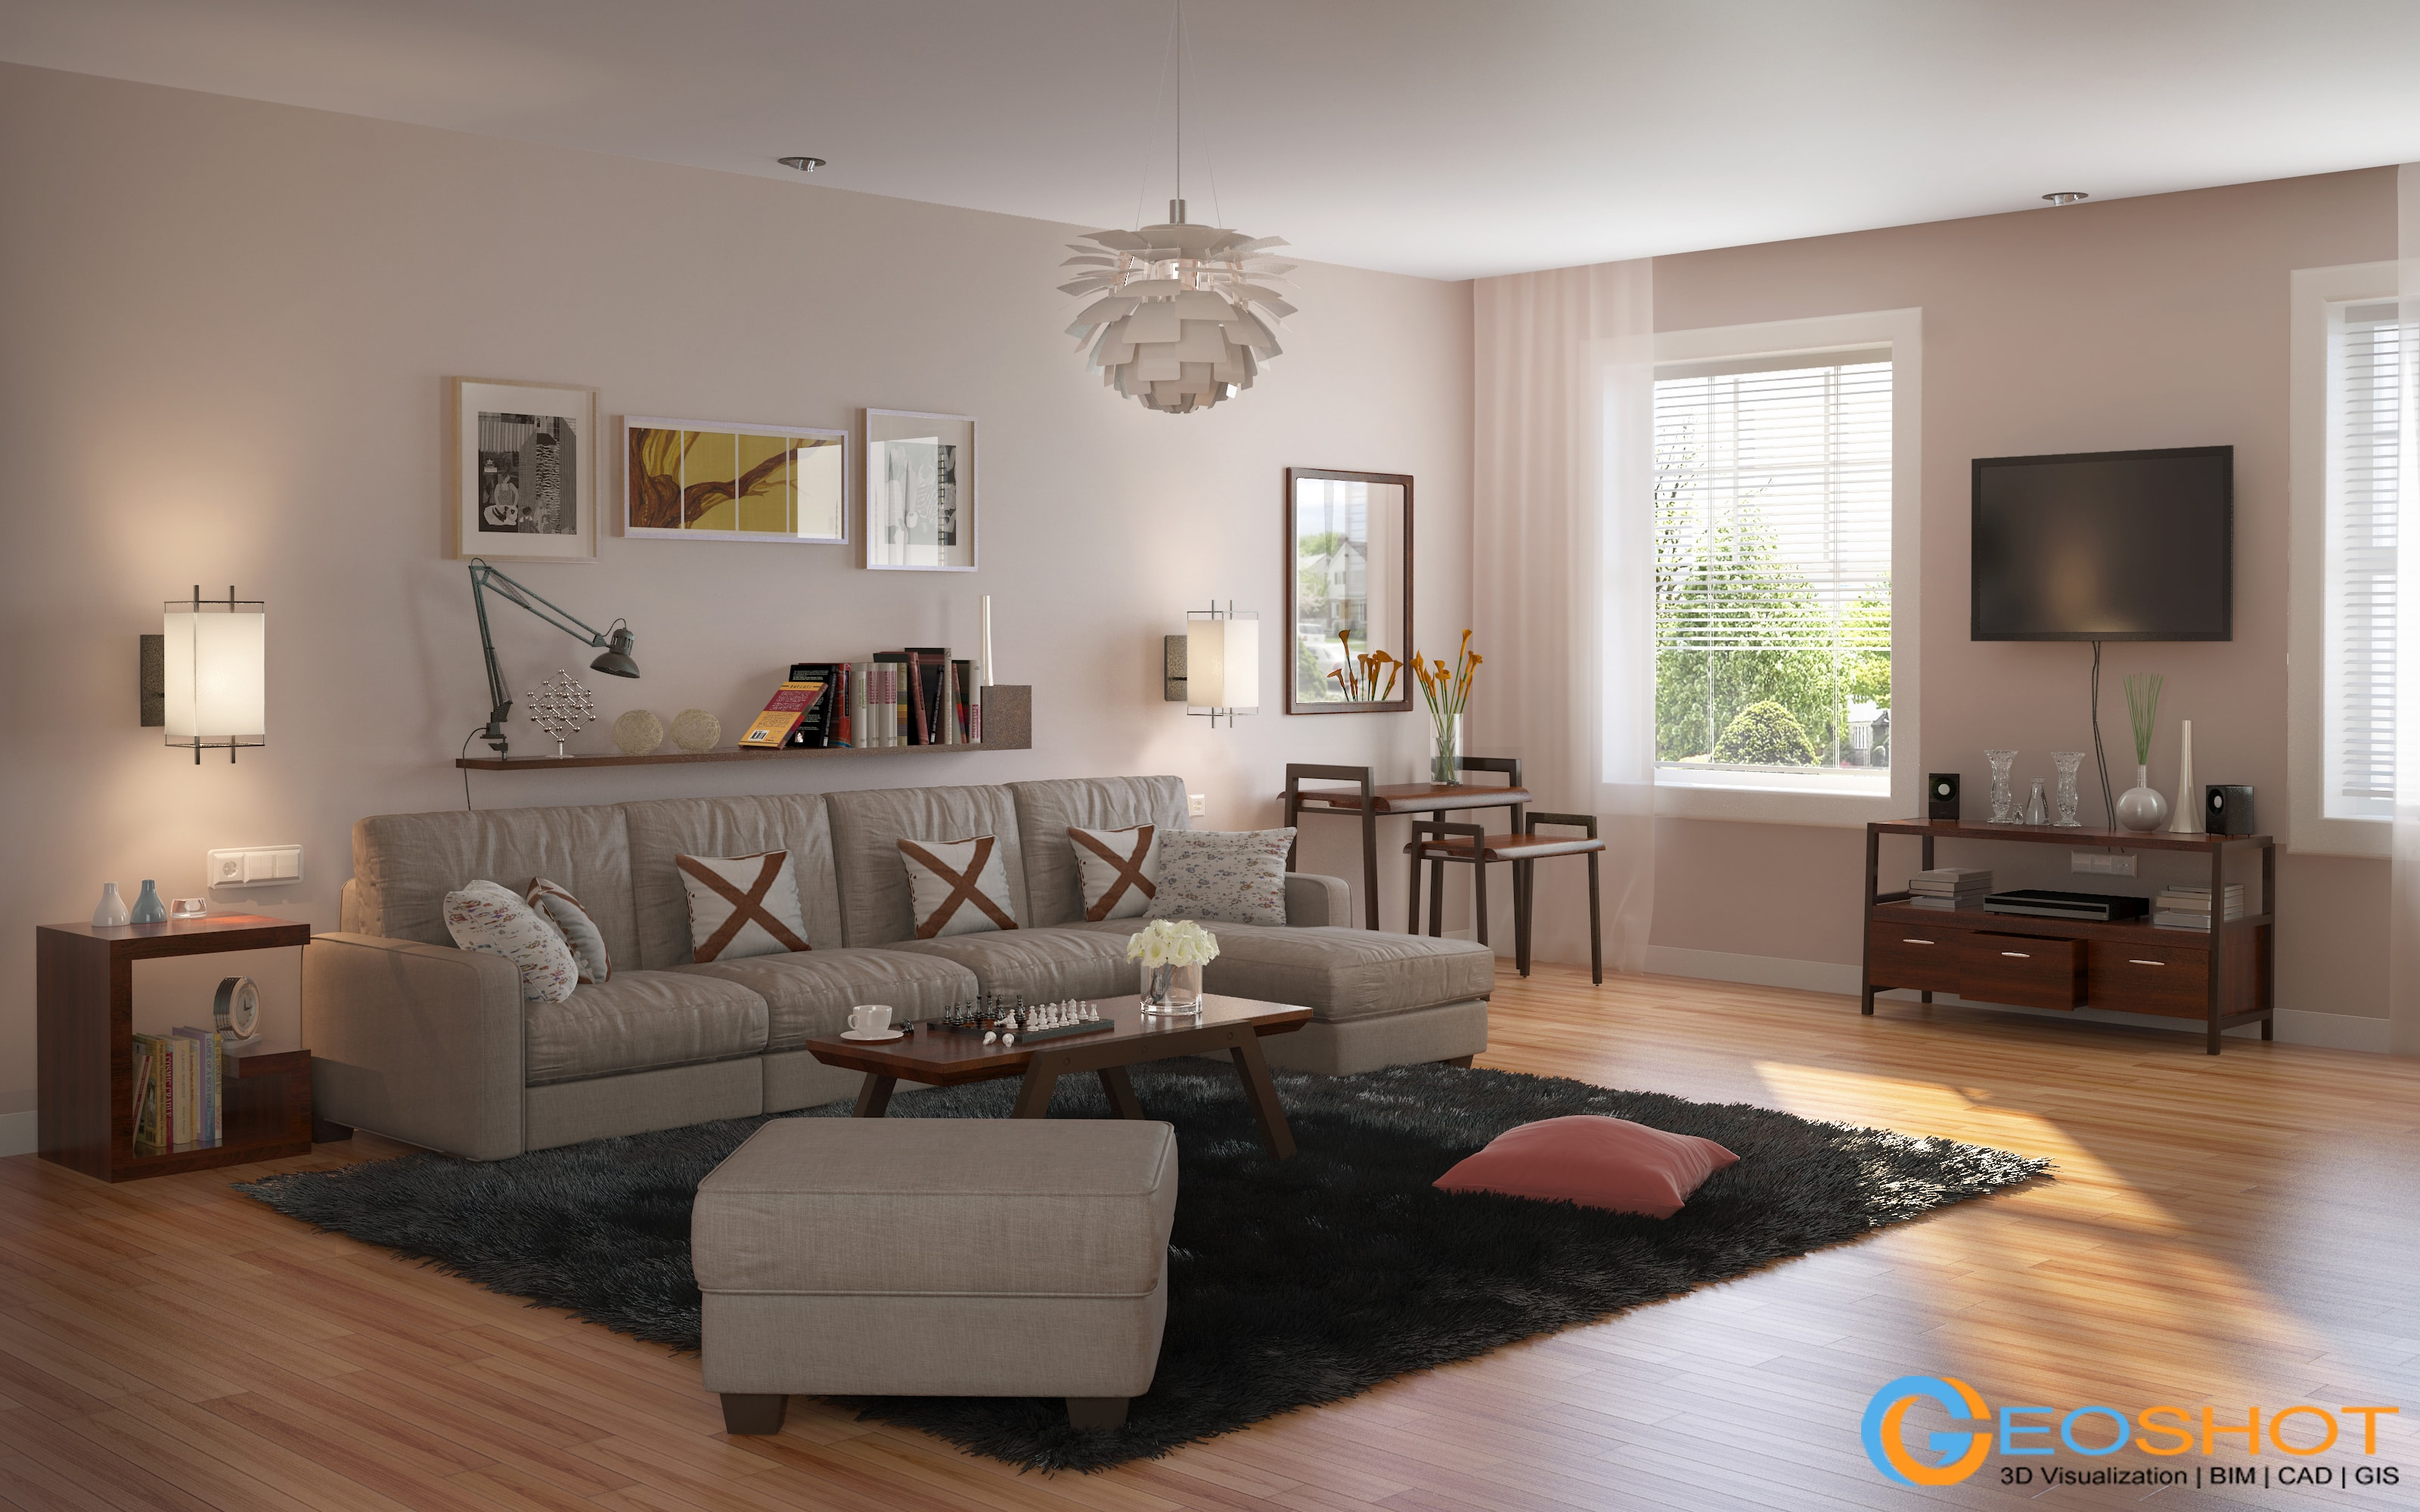 3d interior rendering interior design rendering for 3d interior designs images